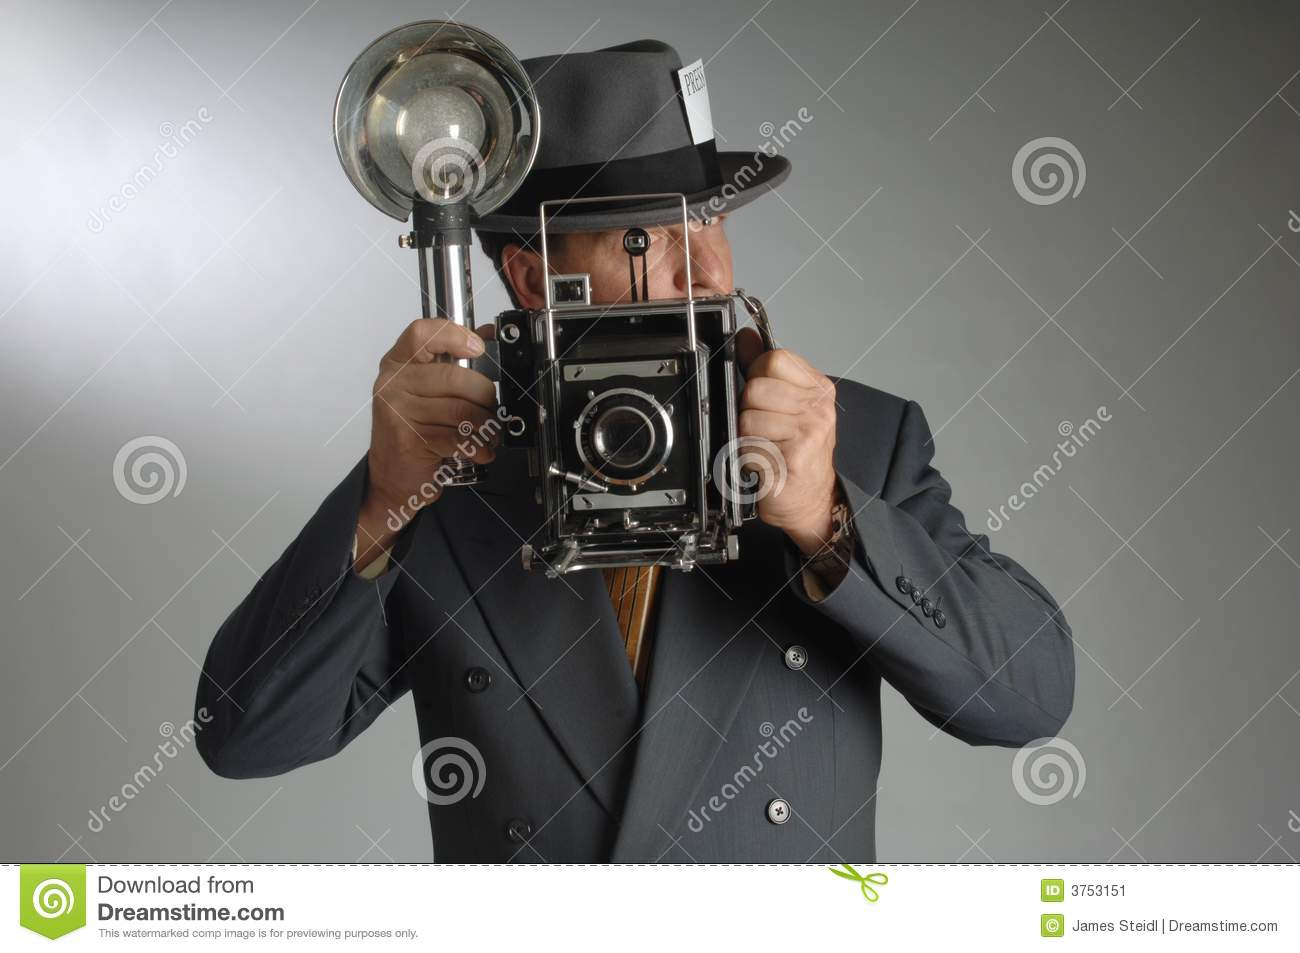 d3160c6824b17 Retro photo journalist wearing a Fedora hat and holding a vintage camera  with flash bulb